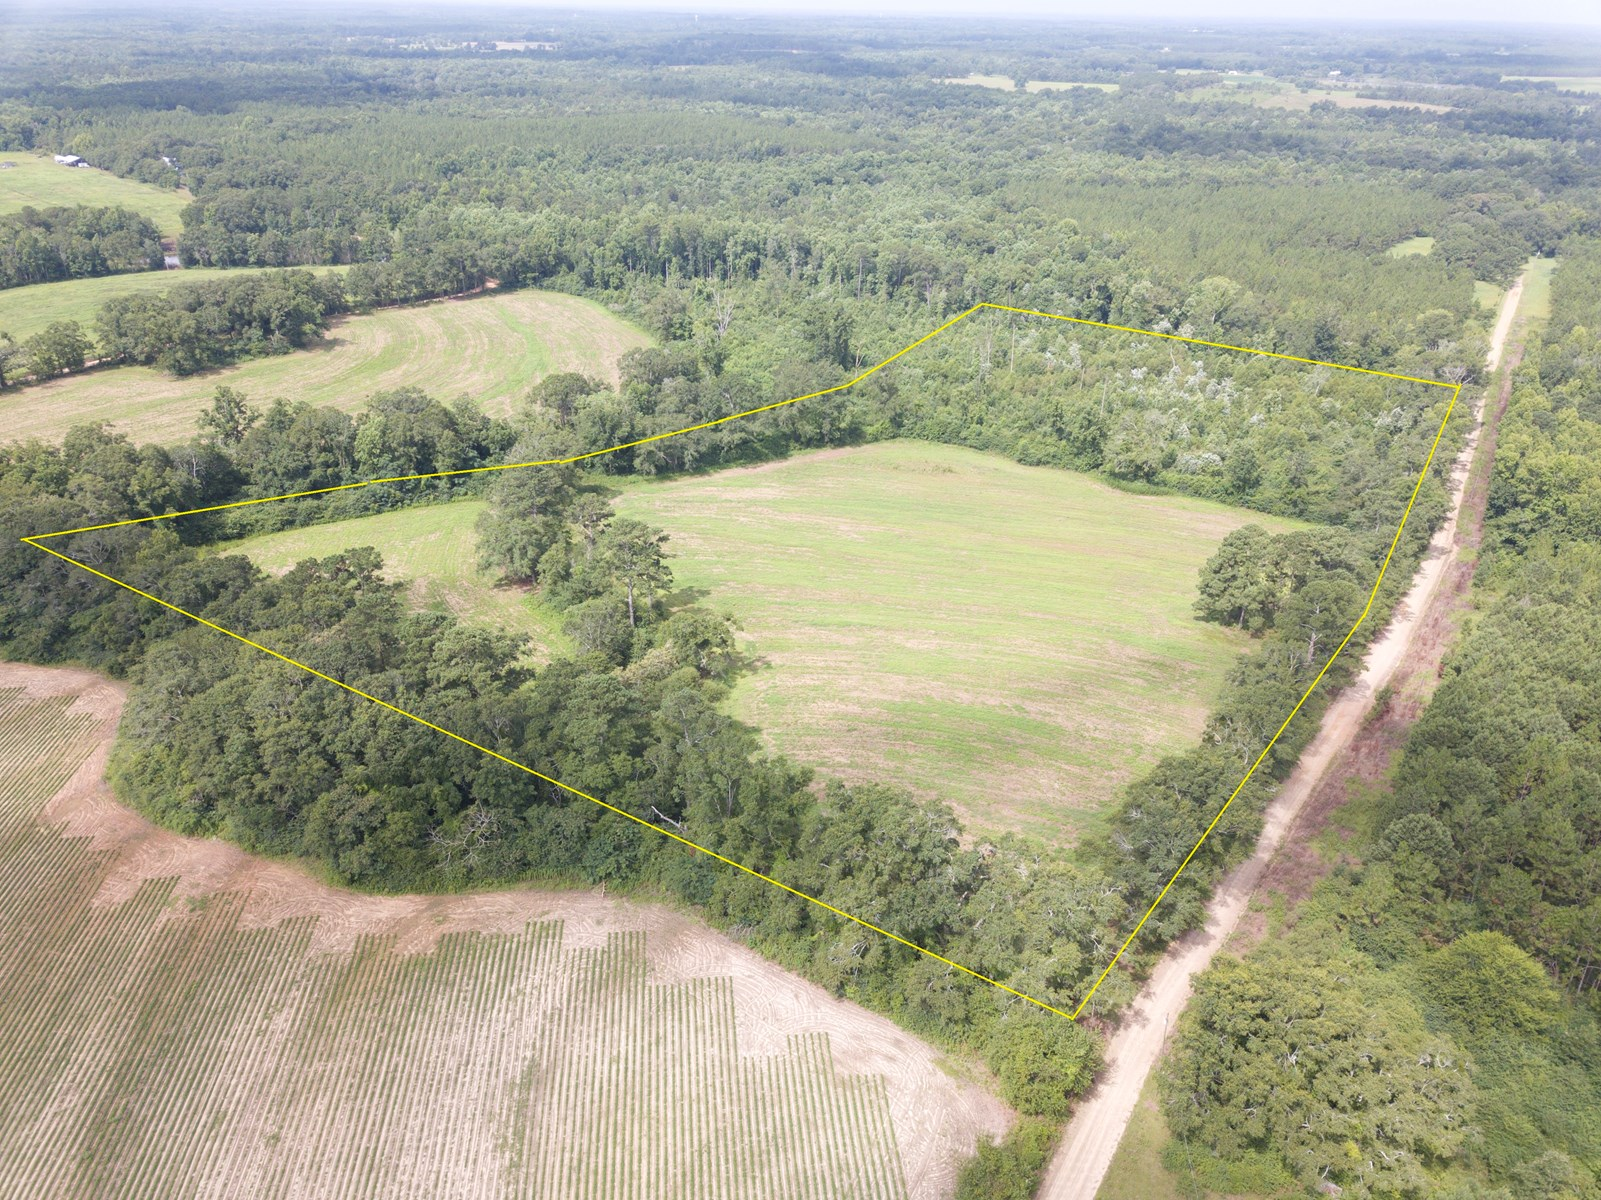 20 ACRES FOR SALE SLOCOMB, ALABAMA